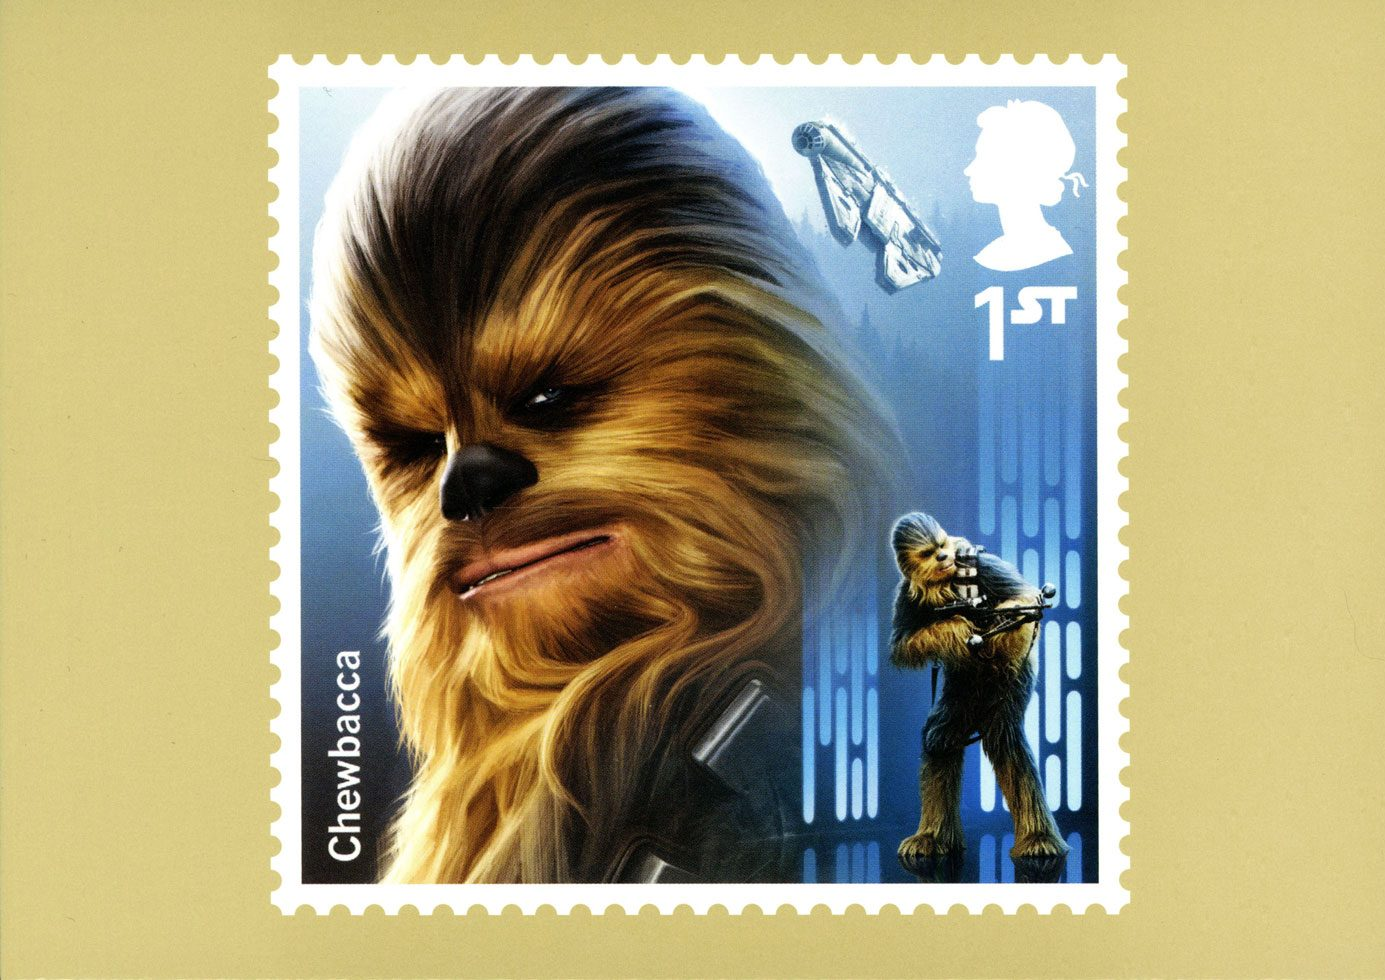 Image of the front of a Chewbacca stamp card from the Star Wars 2017 issue.